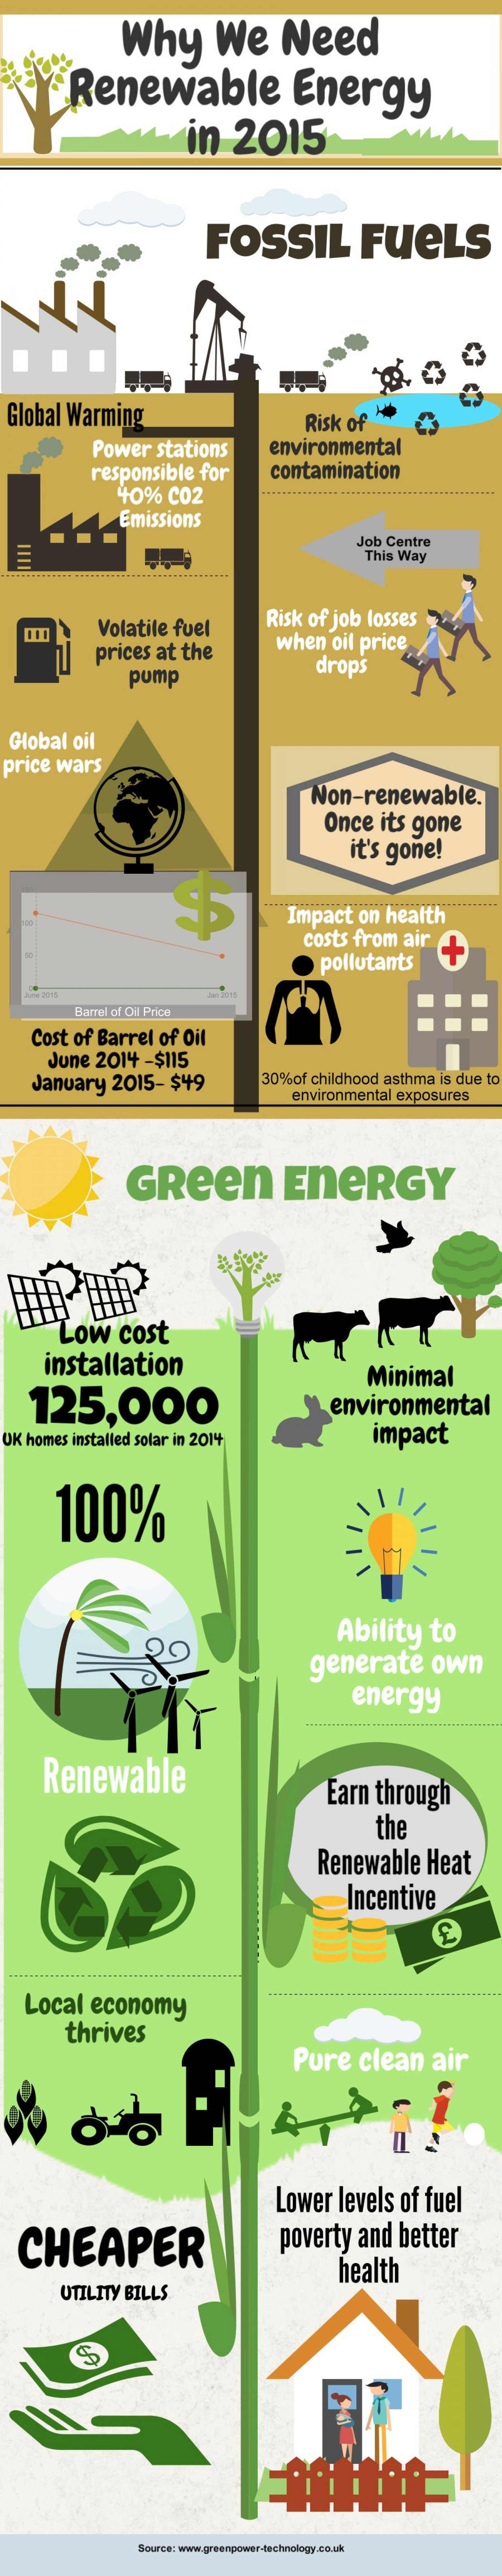 Why We Need Renewable Energy in 2015 Infographic